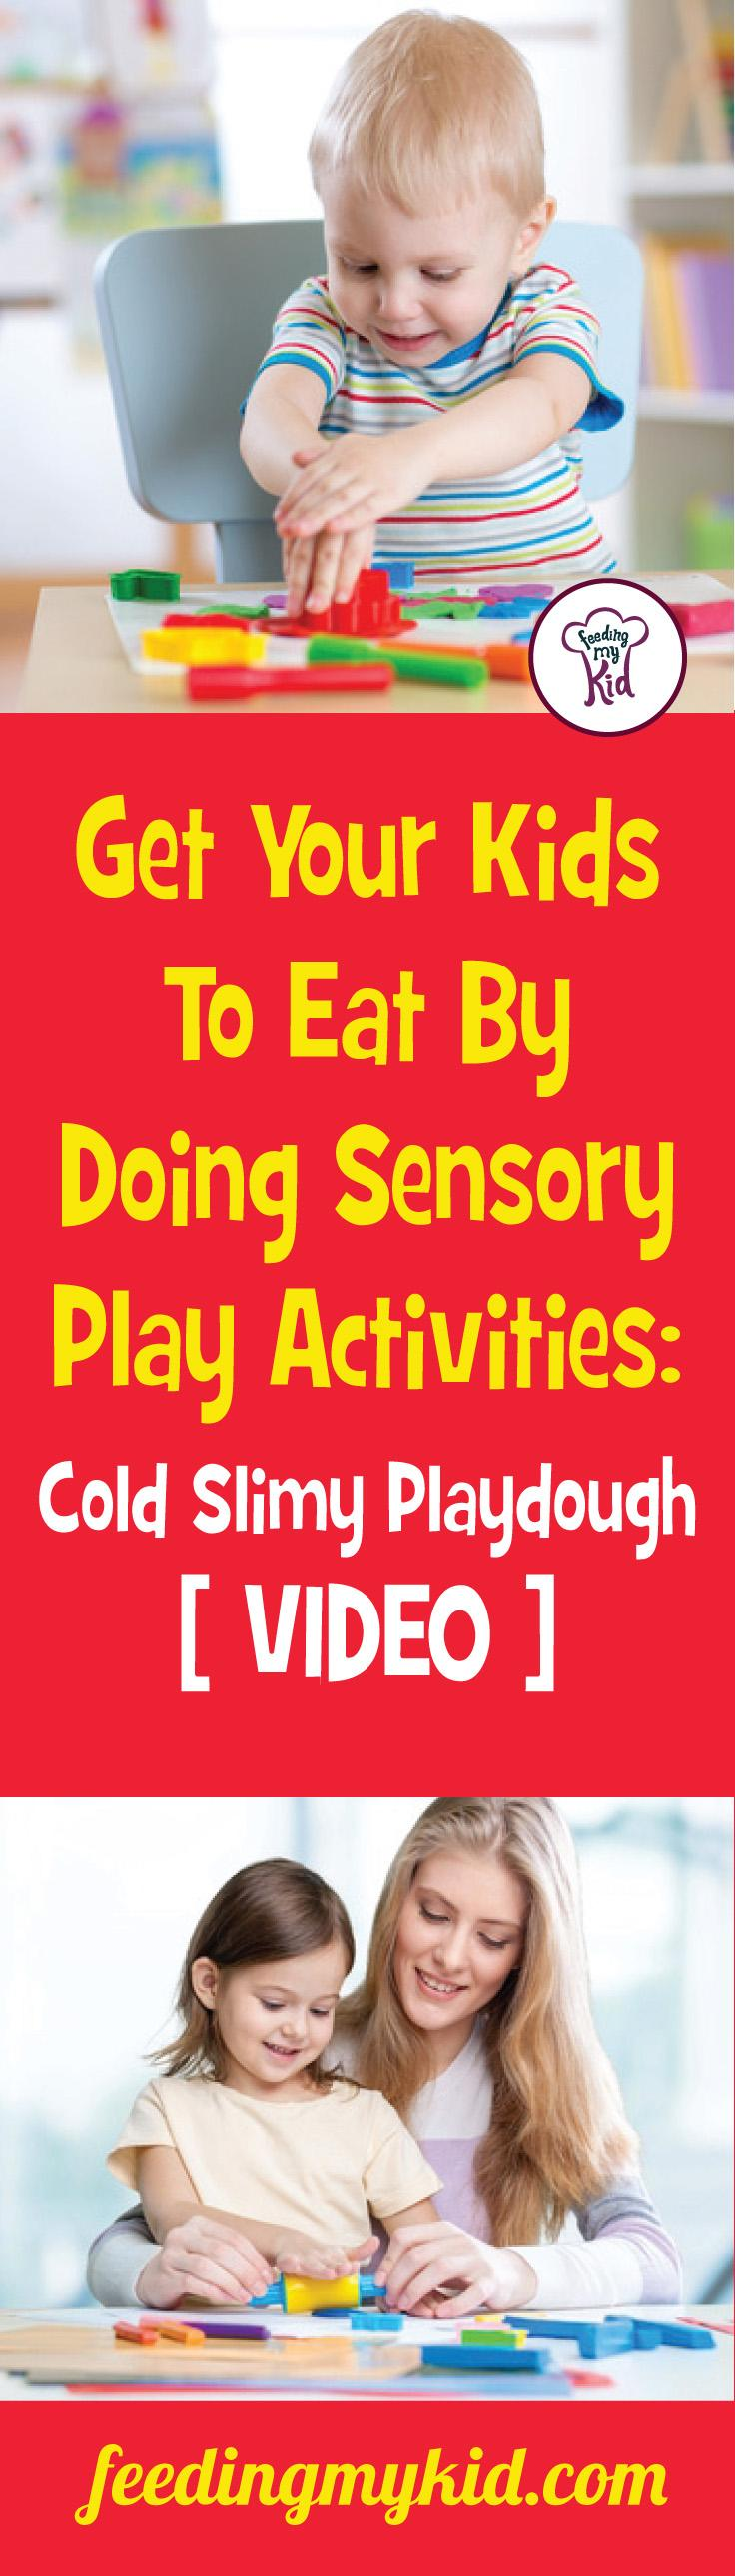 This is a must pin! Watch this video and get kids to play this great sensroy play activity! Feeding My Kid is a site filled with all the information you need on how to raise your kids and take care of your family; from healthy tips to nutritious recipes. We have everything you need! #videos #sensoryplay